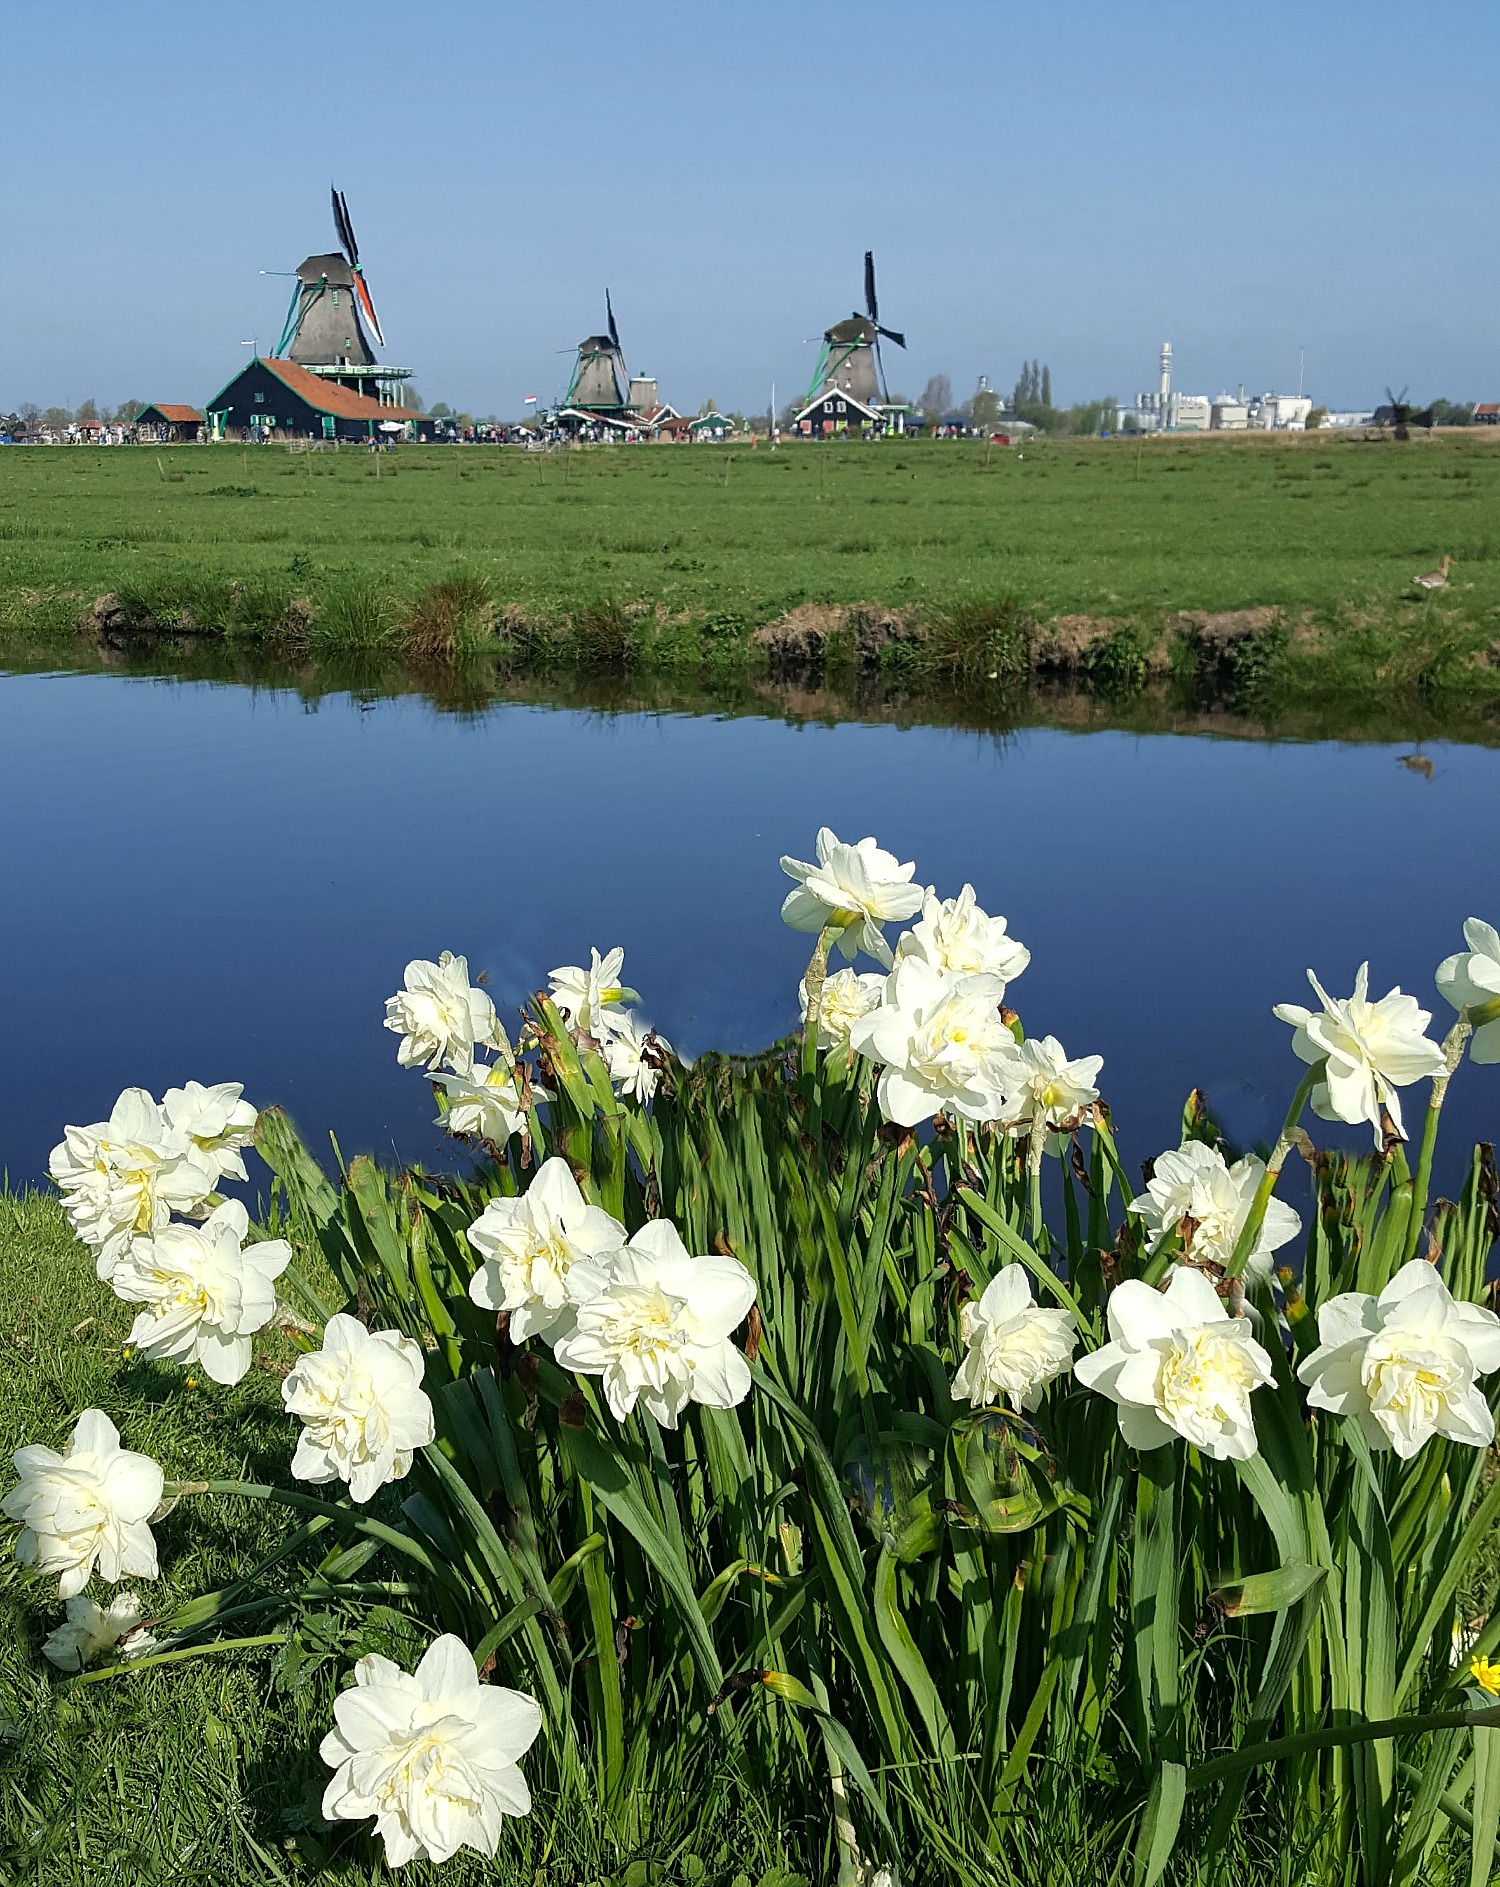 Best day trips from Amsterdam. Flower, mills, and water - quintessential Holland at Zaanse Schans.